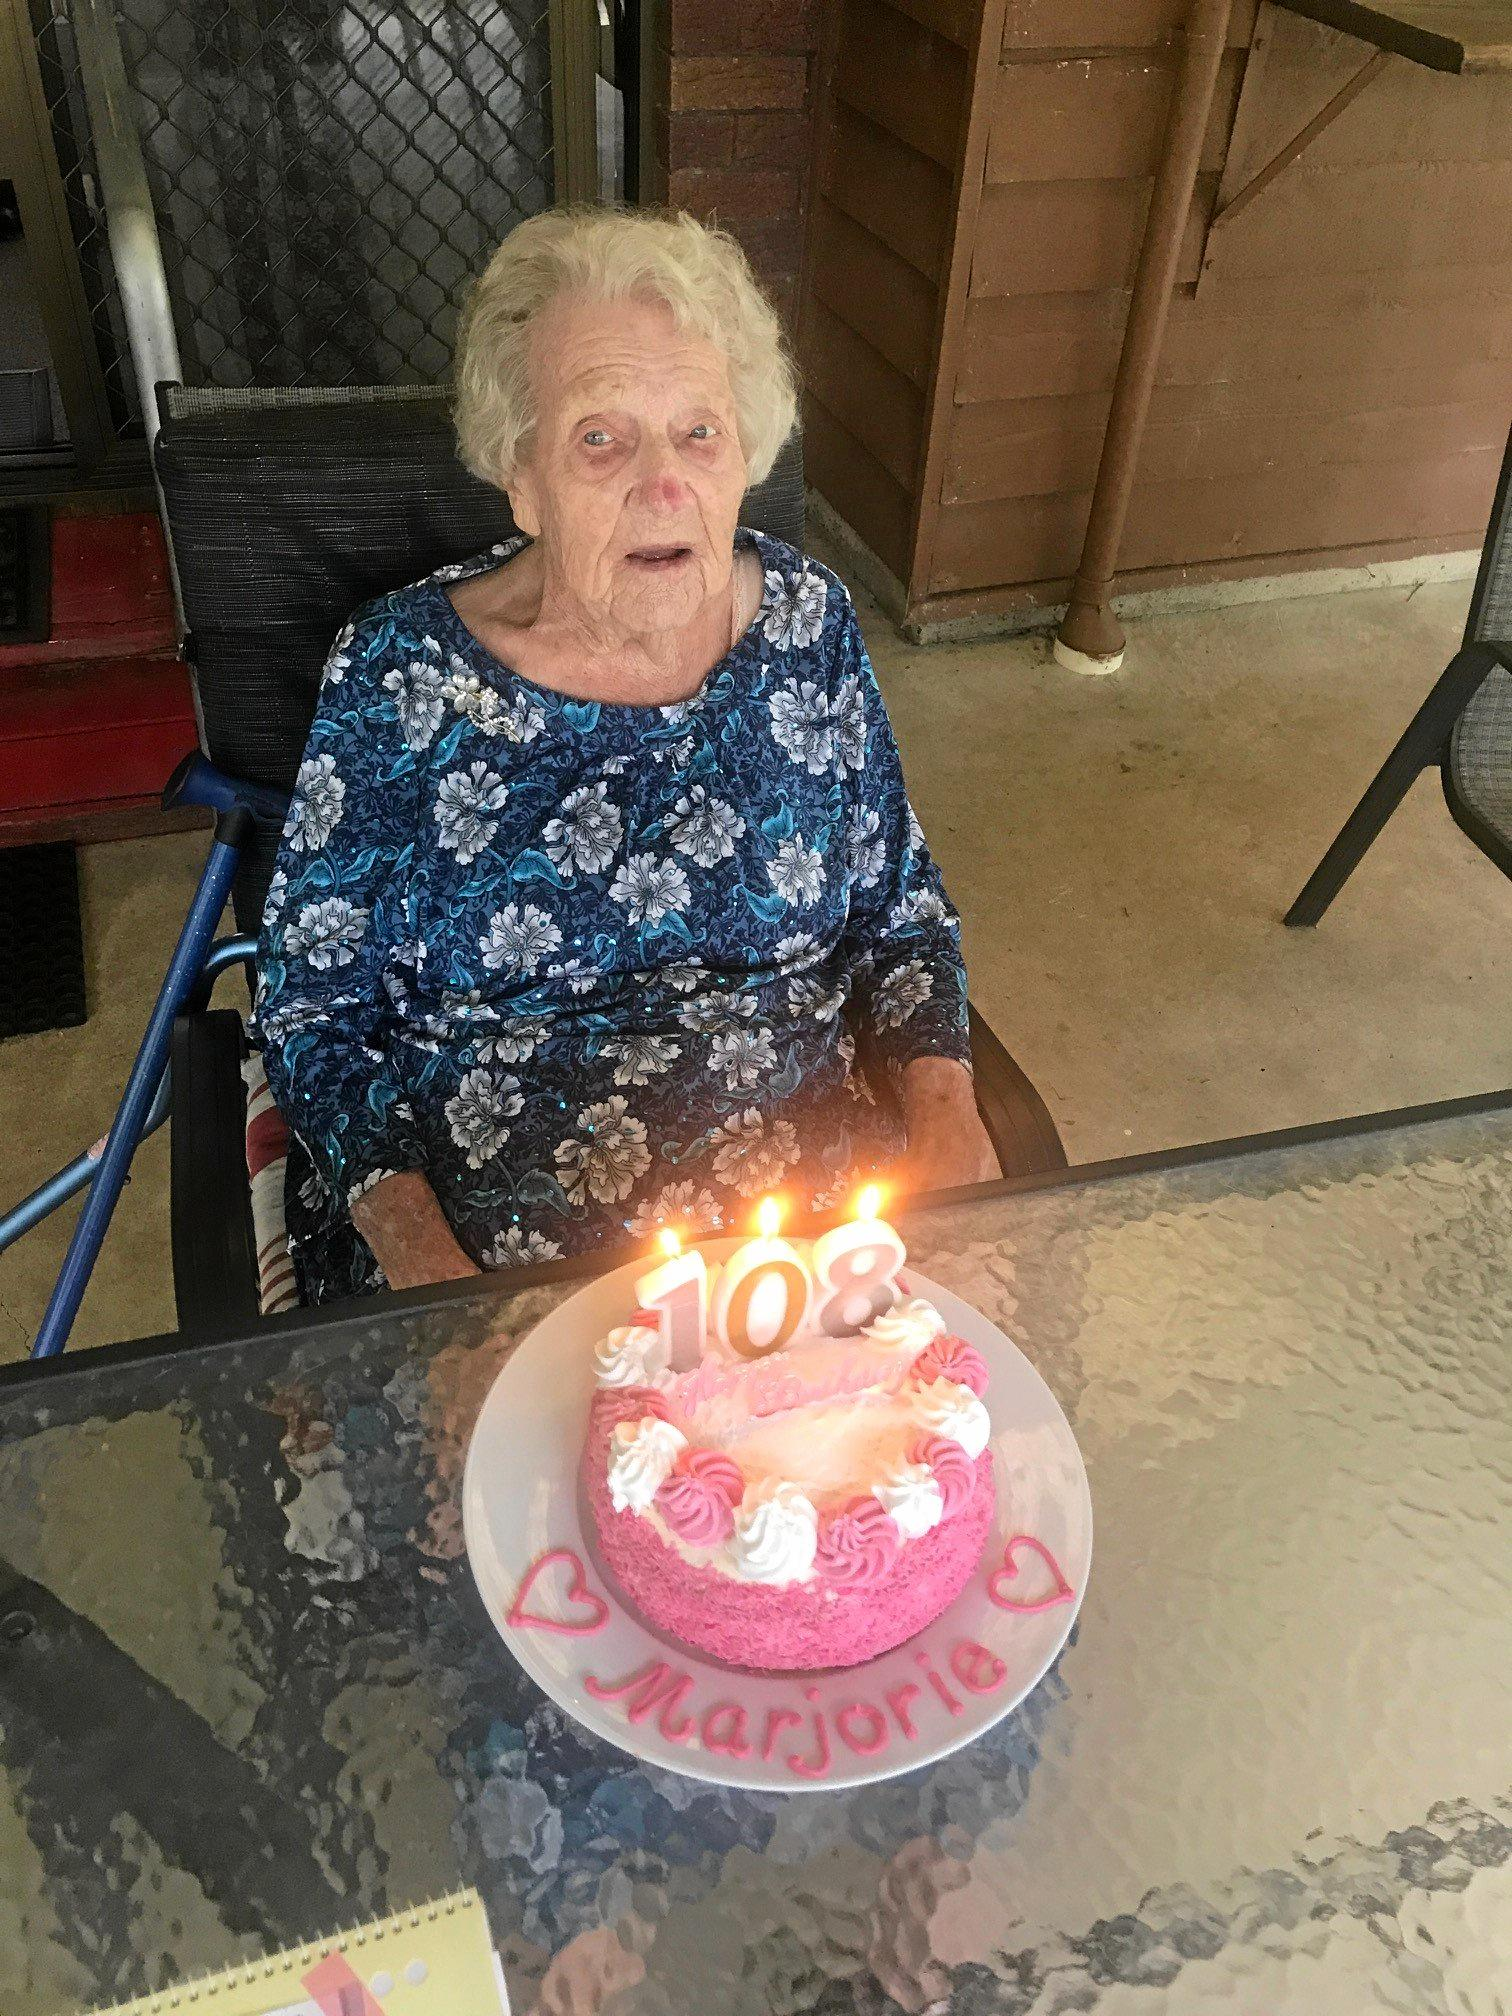 Marjorie Bostock turned 108 this month.